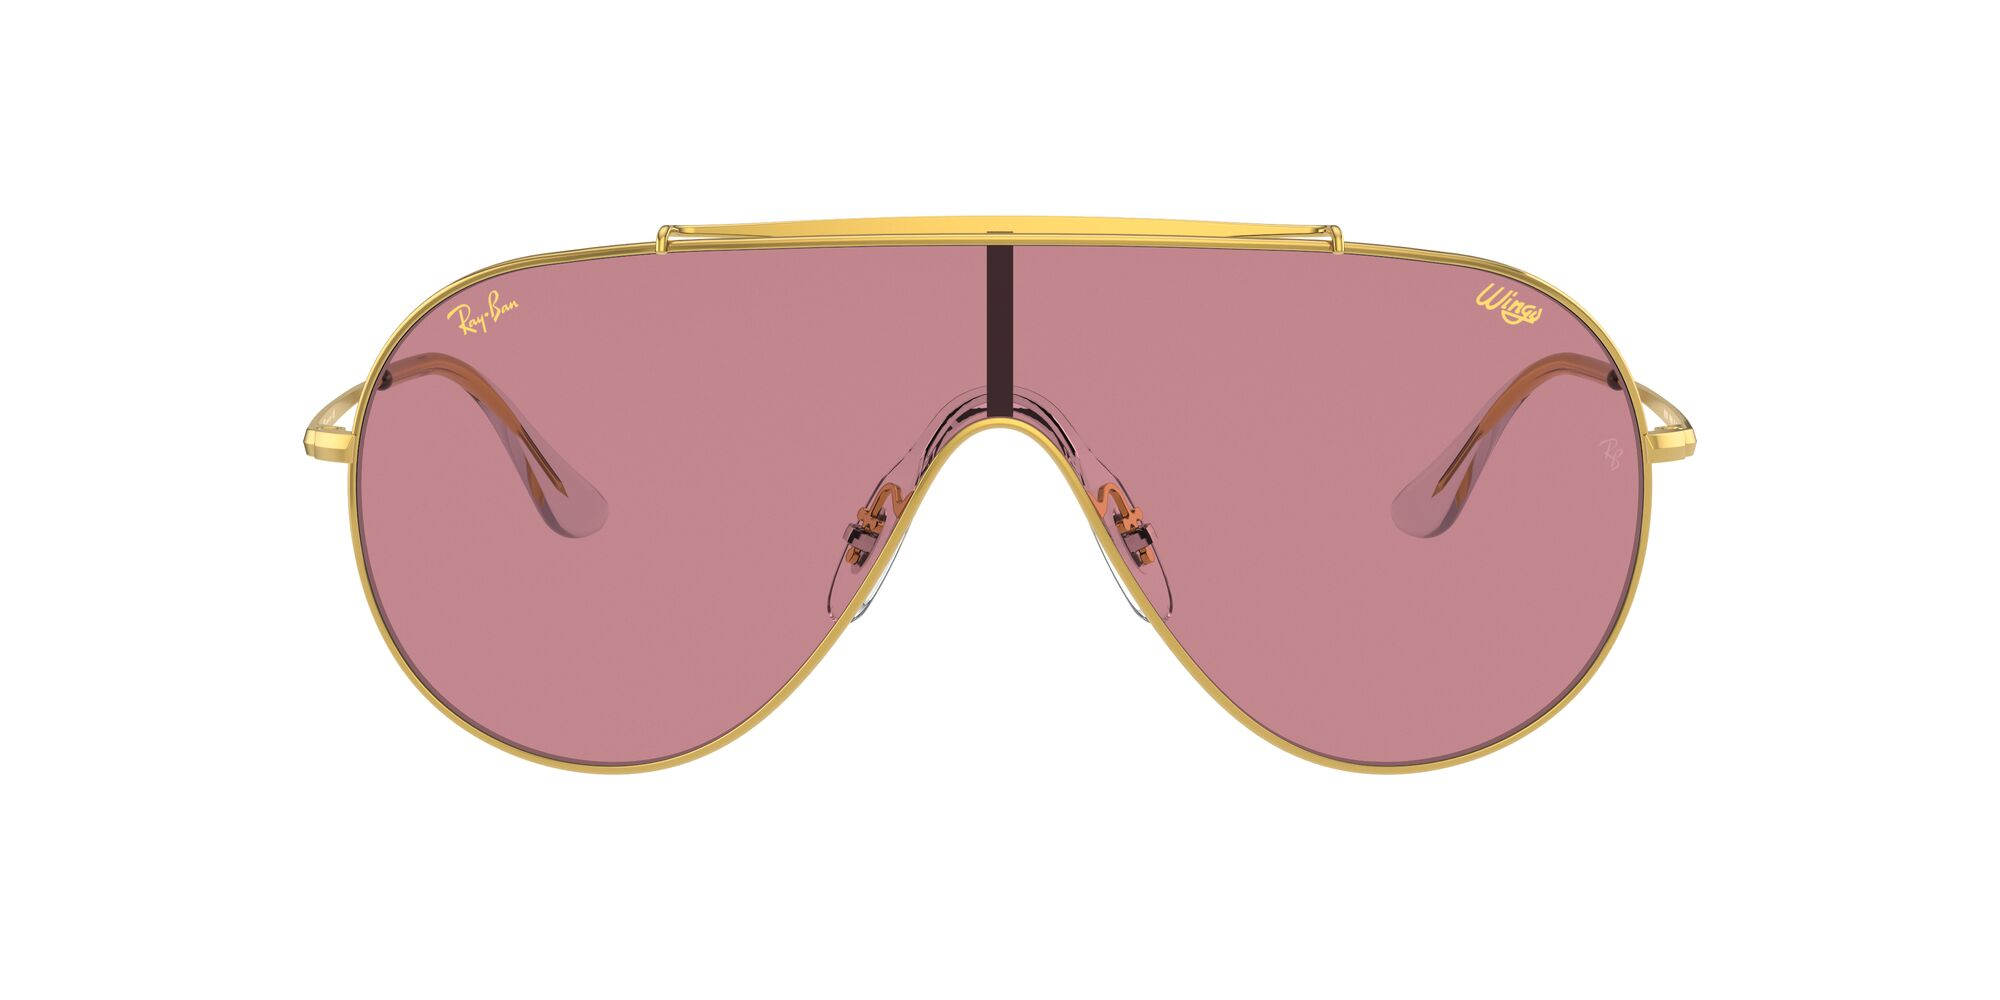 Front Ray-Ban Ray-Ban 0RB3597 919684 0/0 Goud/Roze